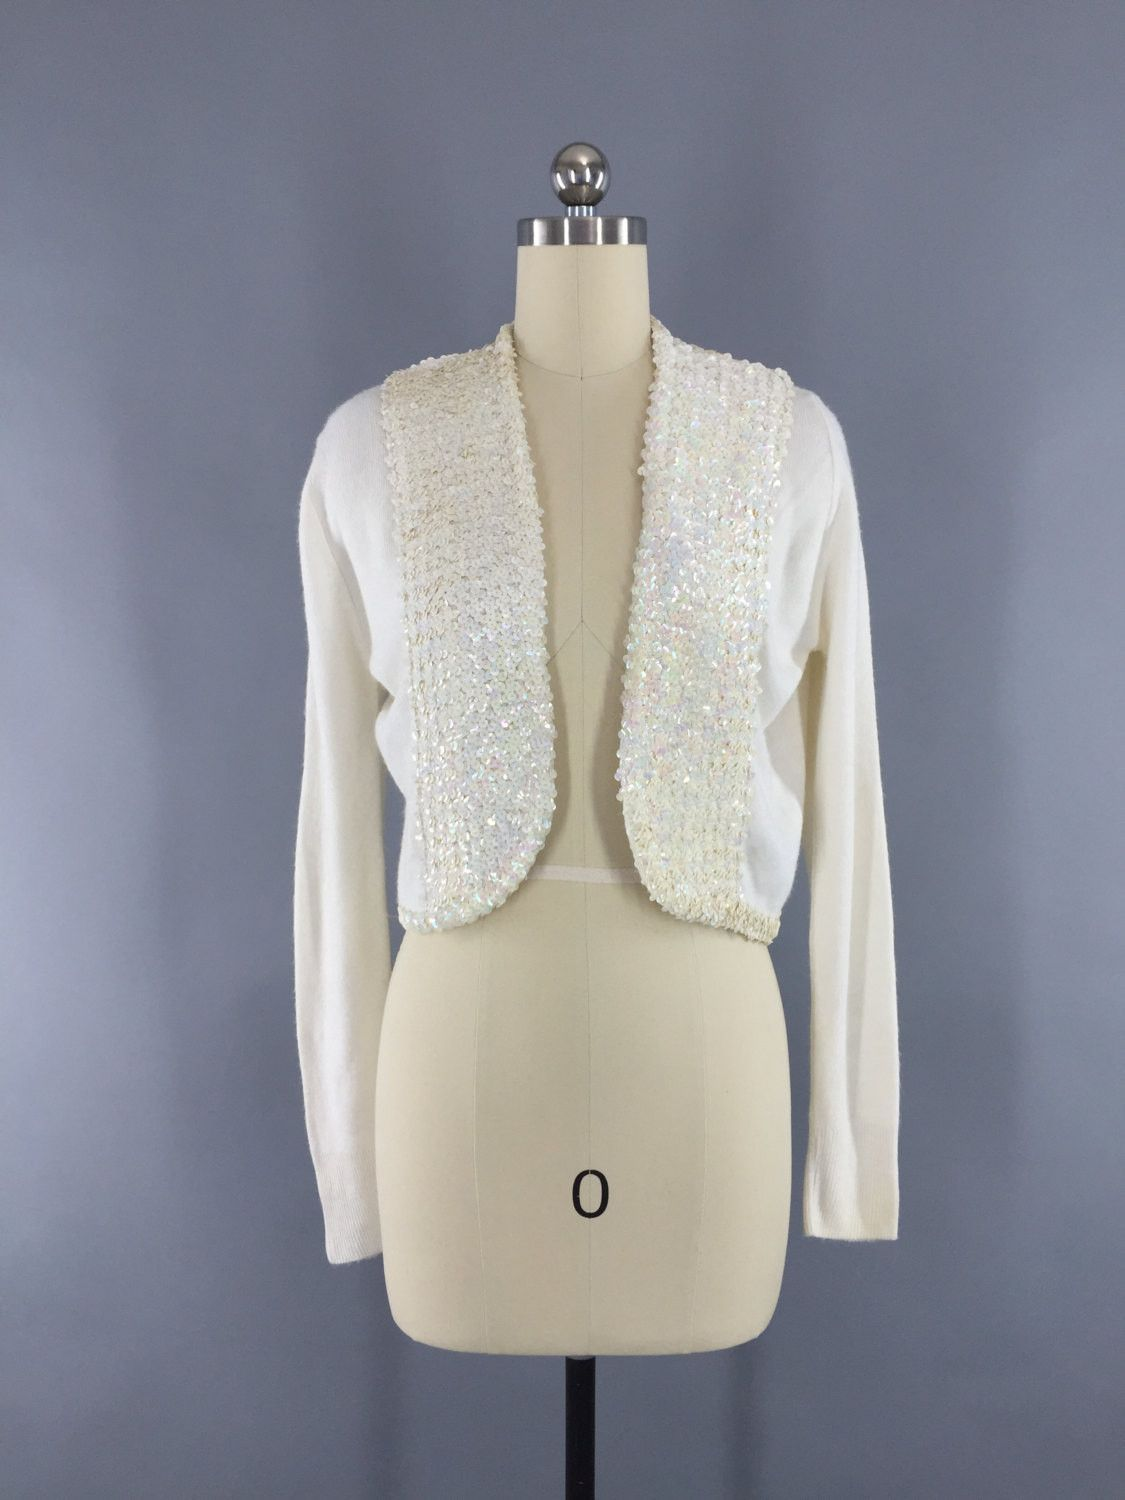 Vintage 1950s White Sequined Cropped Cardigan Sweater | 1950s and ...